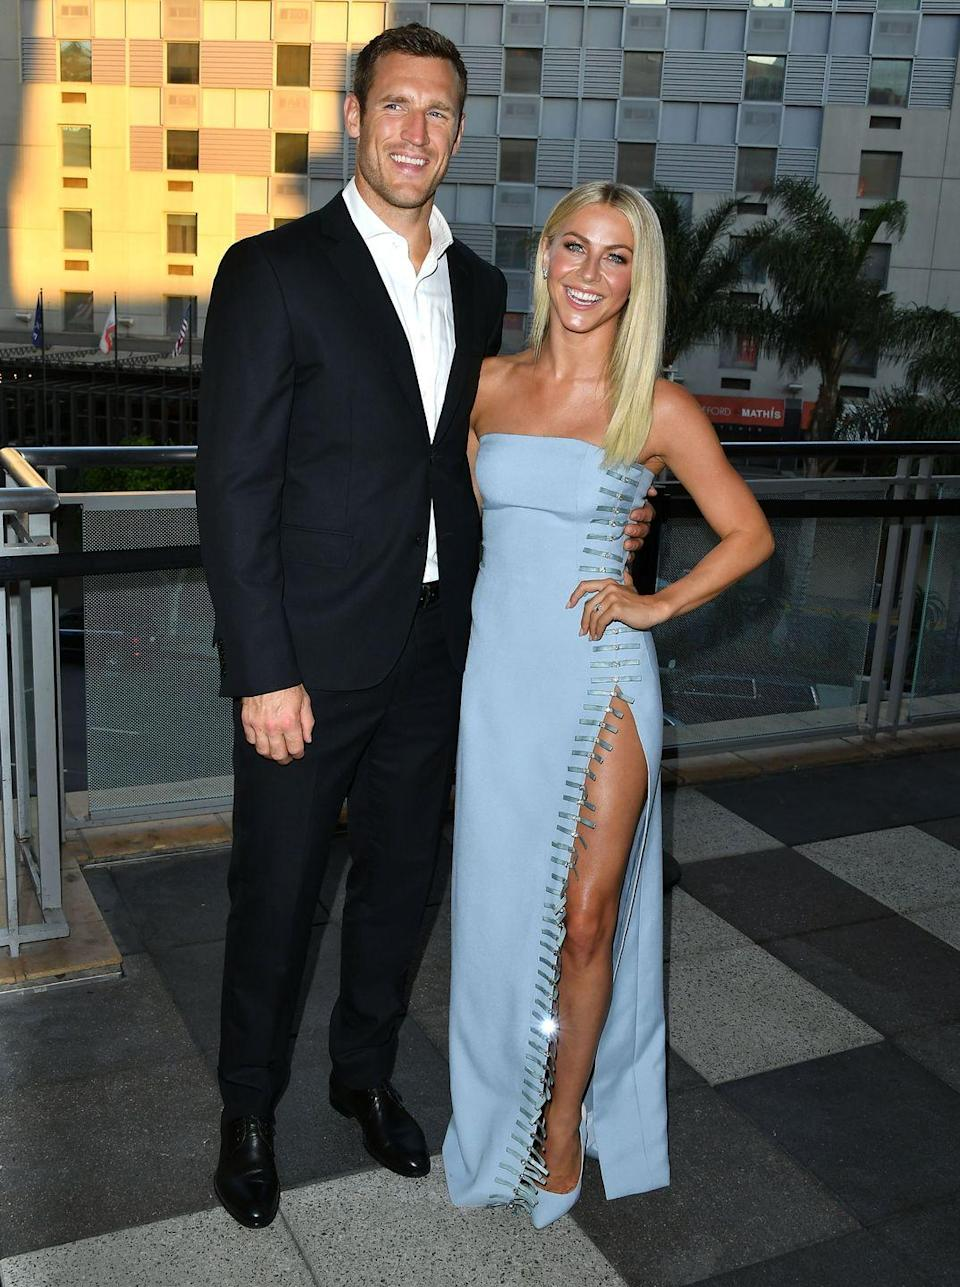 """<p>Everything in Julianne and Brooks' relationship seemed like smooth sailing until 2020 hit. <em><a href=""""https://people.com/tv/julianne-hough-brooks-laich-have-been-having-problems-marriage/"""" rel=""""nofollow noopener"""" target=""""_blank"""" data-ylk=""""slk:People"""" class=""""link rapid-noclick-resp"""">People</a></em> reported in early 2020 that """"they've been having problems for months,"""" because """"she's very independent and a free spirit, and that's been tough for Brooks and their marriage."""" </p><p>By May, <em><a href=""""https://people.com/tv/julianne-hough-brooks-laich-relationship-hasnt-changed/"""" rel=""""nofollow noopener"""" target=""""_blank"""" data-ylk=""""slk:People"""" class=""""link rapid-noclick-resp"""">People</a></em> revealed Brooks and Julianne were quarantining away from each other in separate states, but it didn't seem to be a big deal since they were already used to living """"separate lives."""" On May 29, they announced their breakup in a joint statement to <em><a href=""""https://www.cosmopolitan.com/entertainment/celebs/a30798719/julianne-hough-brooks-laich-divorce/"""" rel=""""nofollow noopener"""" target=""""_blank"""" data-ylk=""""slk:People"""" class=""""link rapid-noclick-resp"""">People</a></em>. <a href=""""https://www.usmagazine.com/celebrity-news/news/julianne-hough-files-for-divorce-from-brooks-laich-5-months-after-split/"""" rel=""""nofollow noopener"""" target=""""_blank"""" data-ylk=""""slk:Julianne filed for a dissolution of marriage"""" class=""""link rapid-noclick-resp"""">Julianne filed for a dissolution of marriage</a> in November. </p>"""